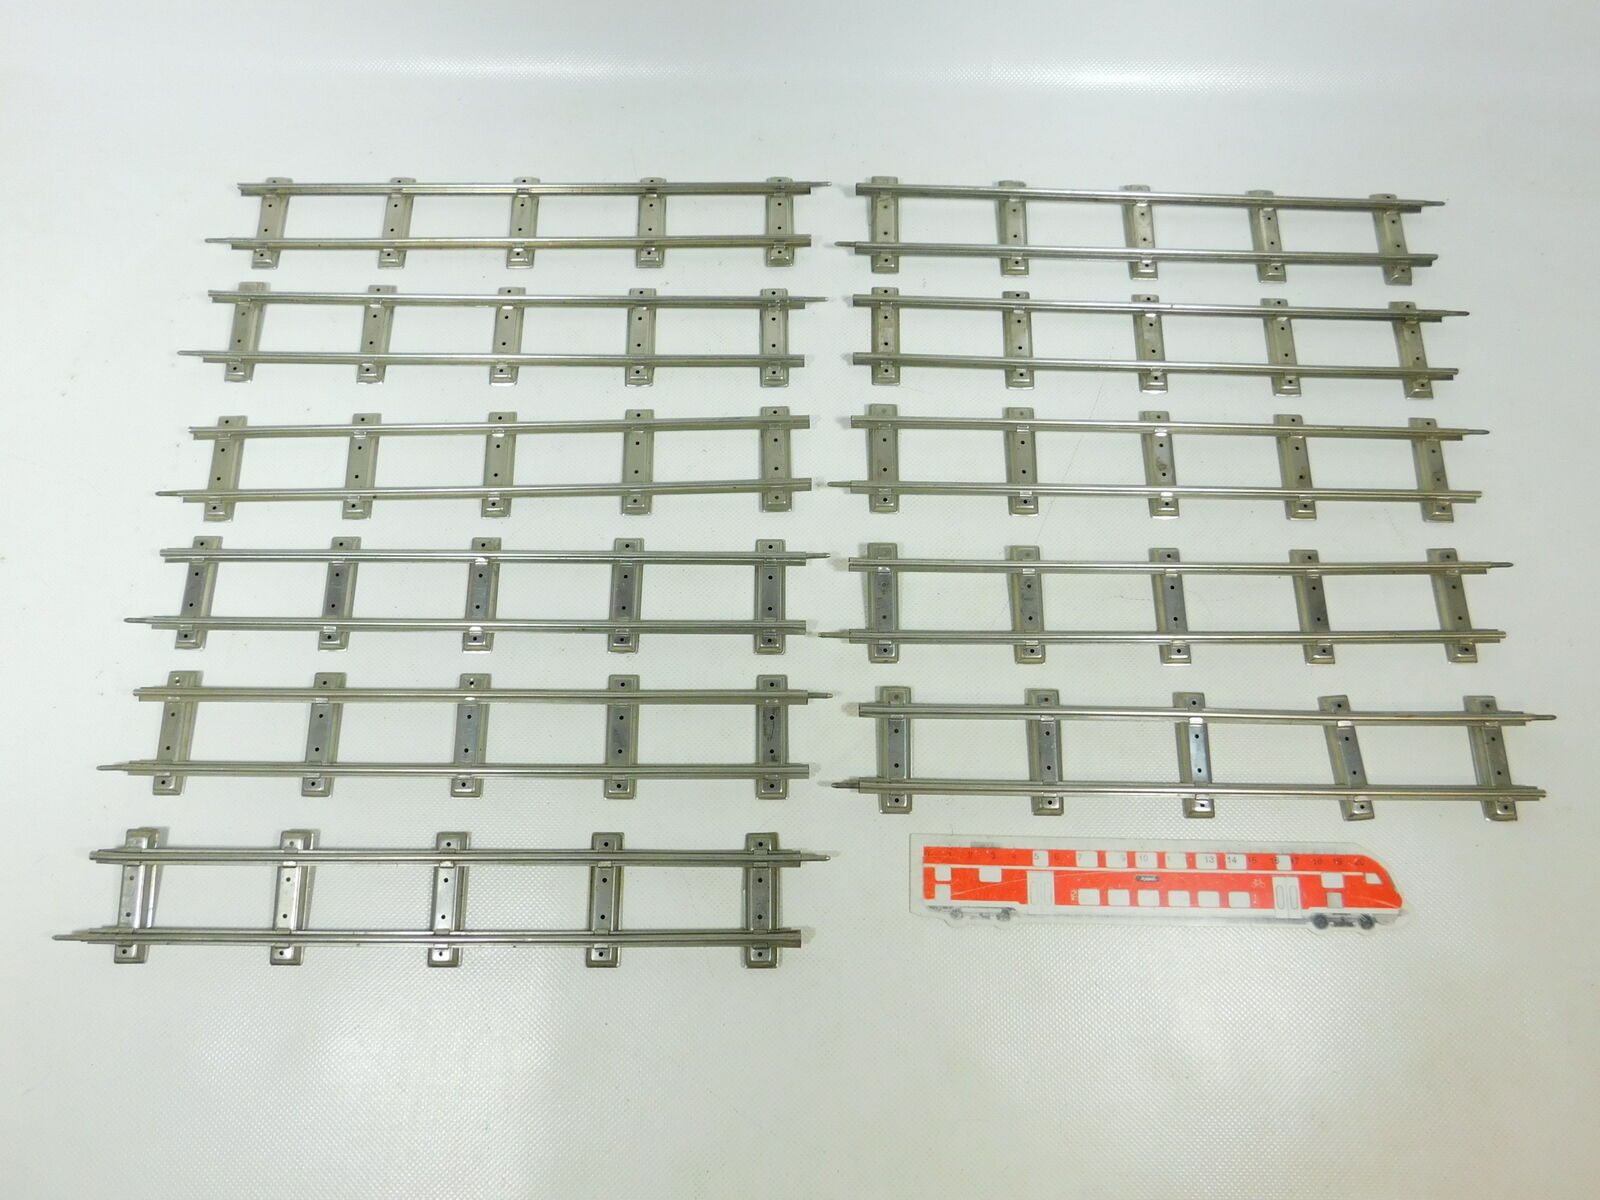 Bw156-1 x right lane ditmar 0 (32 cm) for running on casters